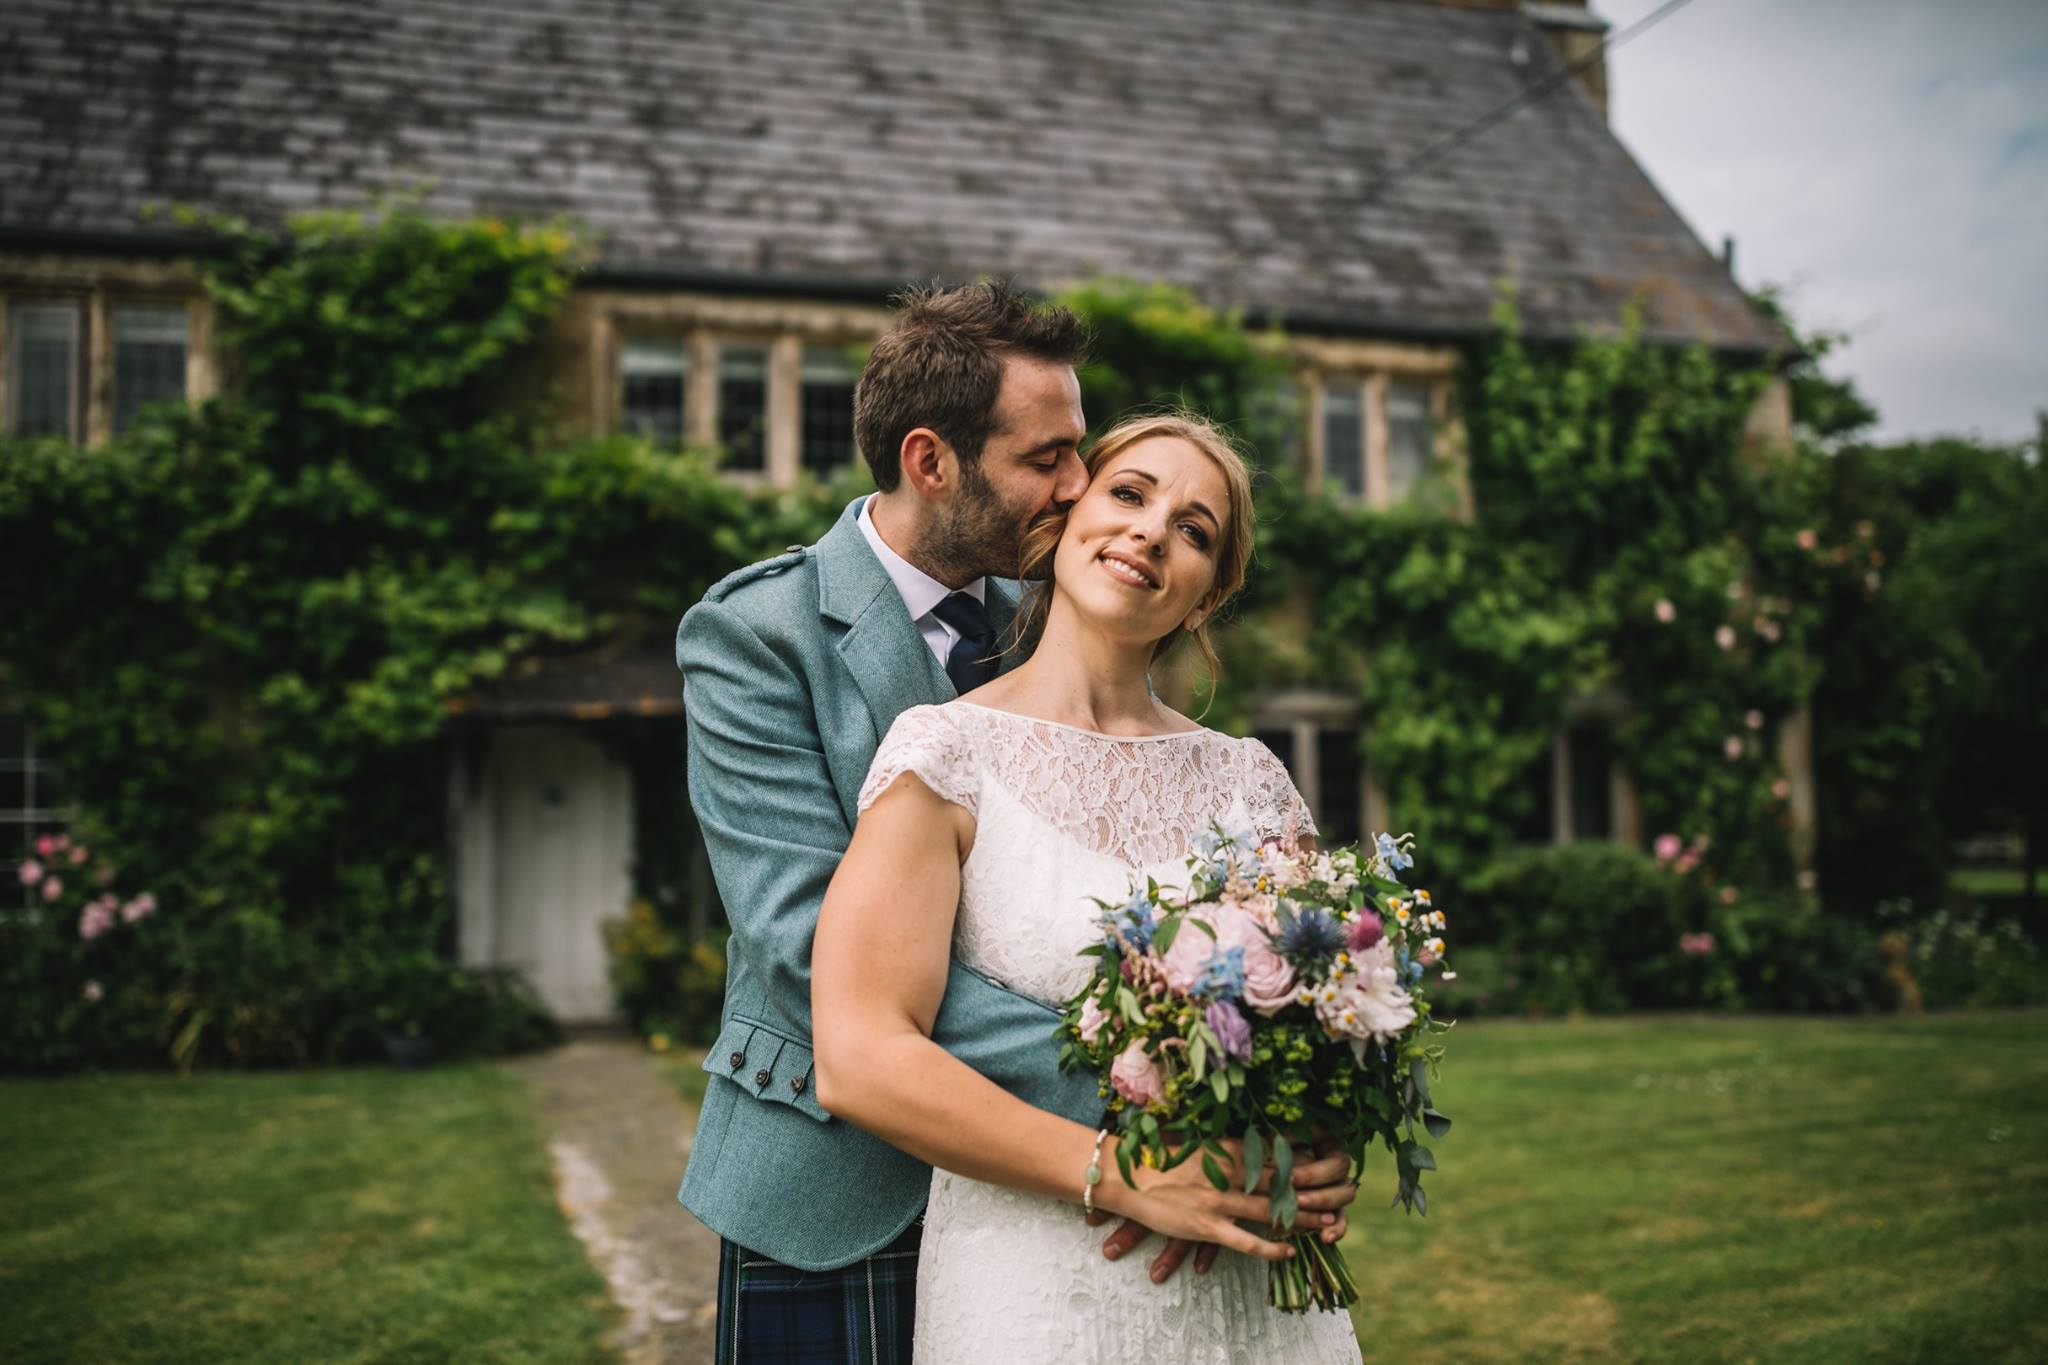 Beautiful bride Amy wore a wedding dress by Halfpenny London